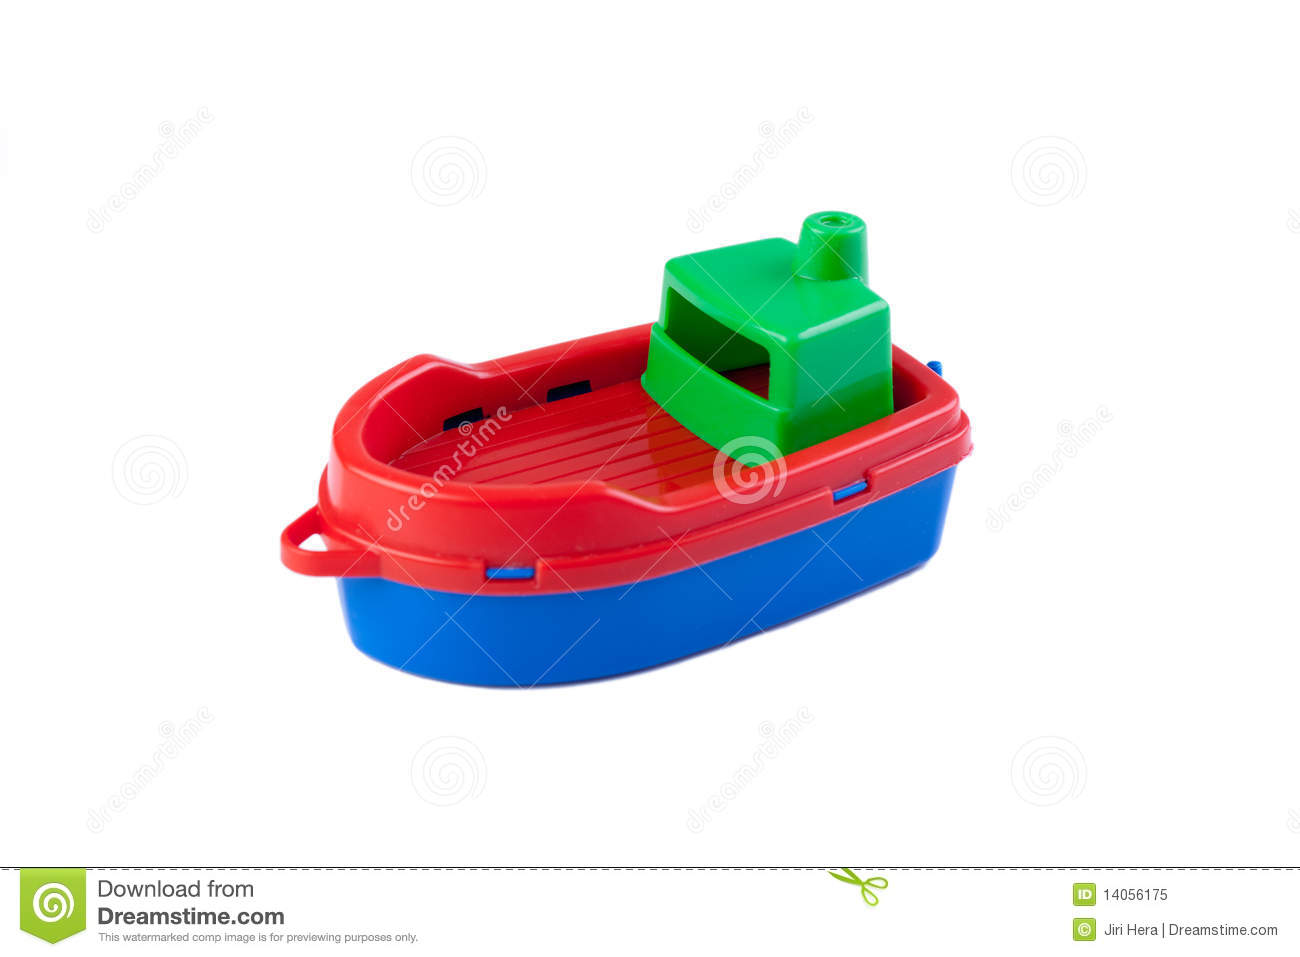 Plastic toy boat stock image. Image of coast, game ...